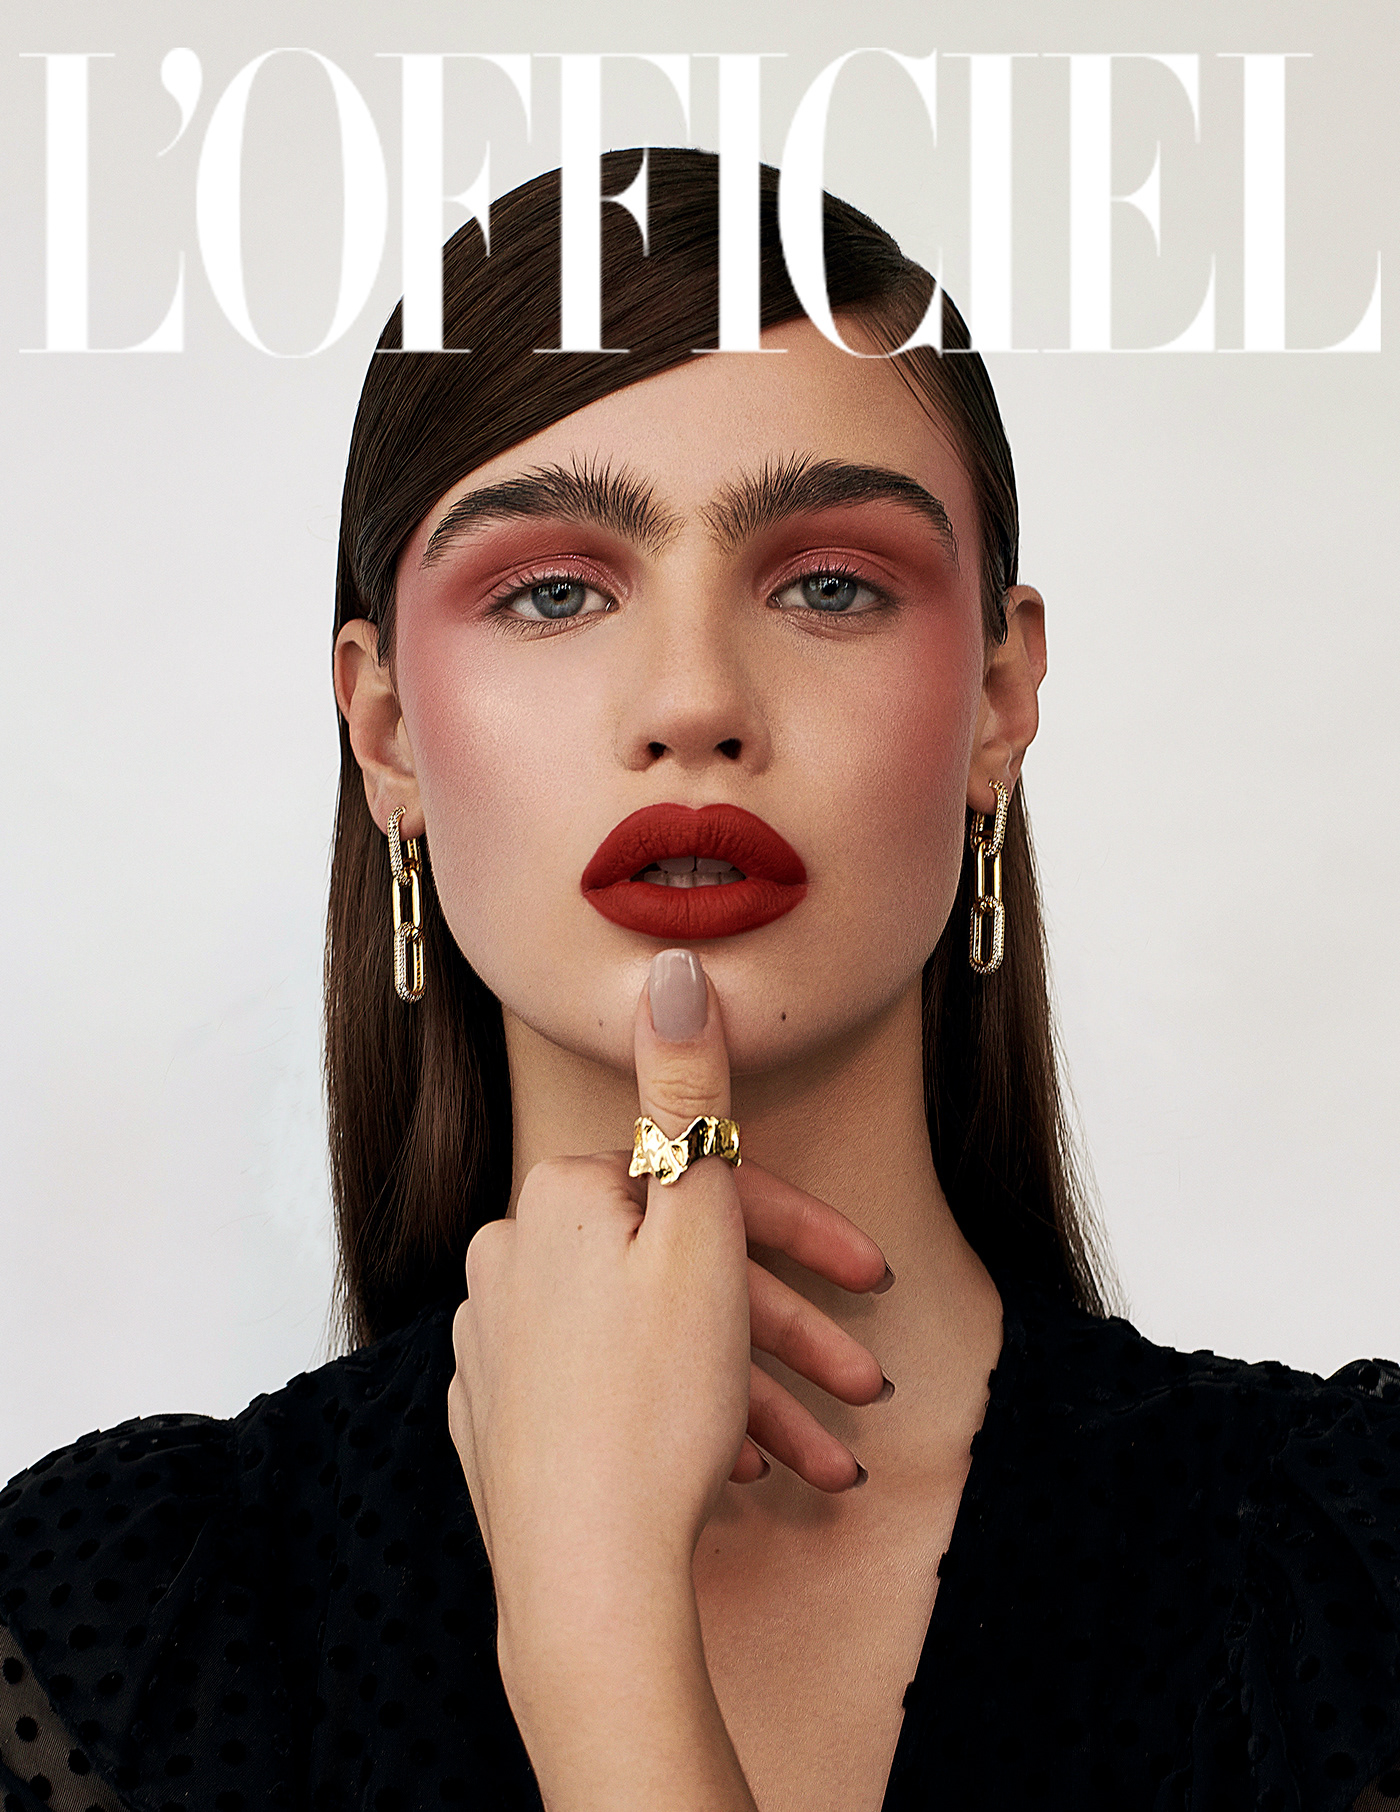 Beauty editorial for L'Officiel Magazine